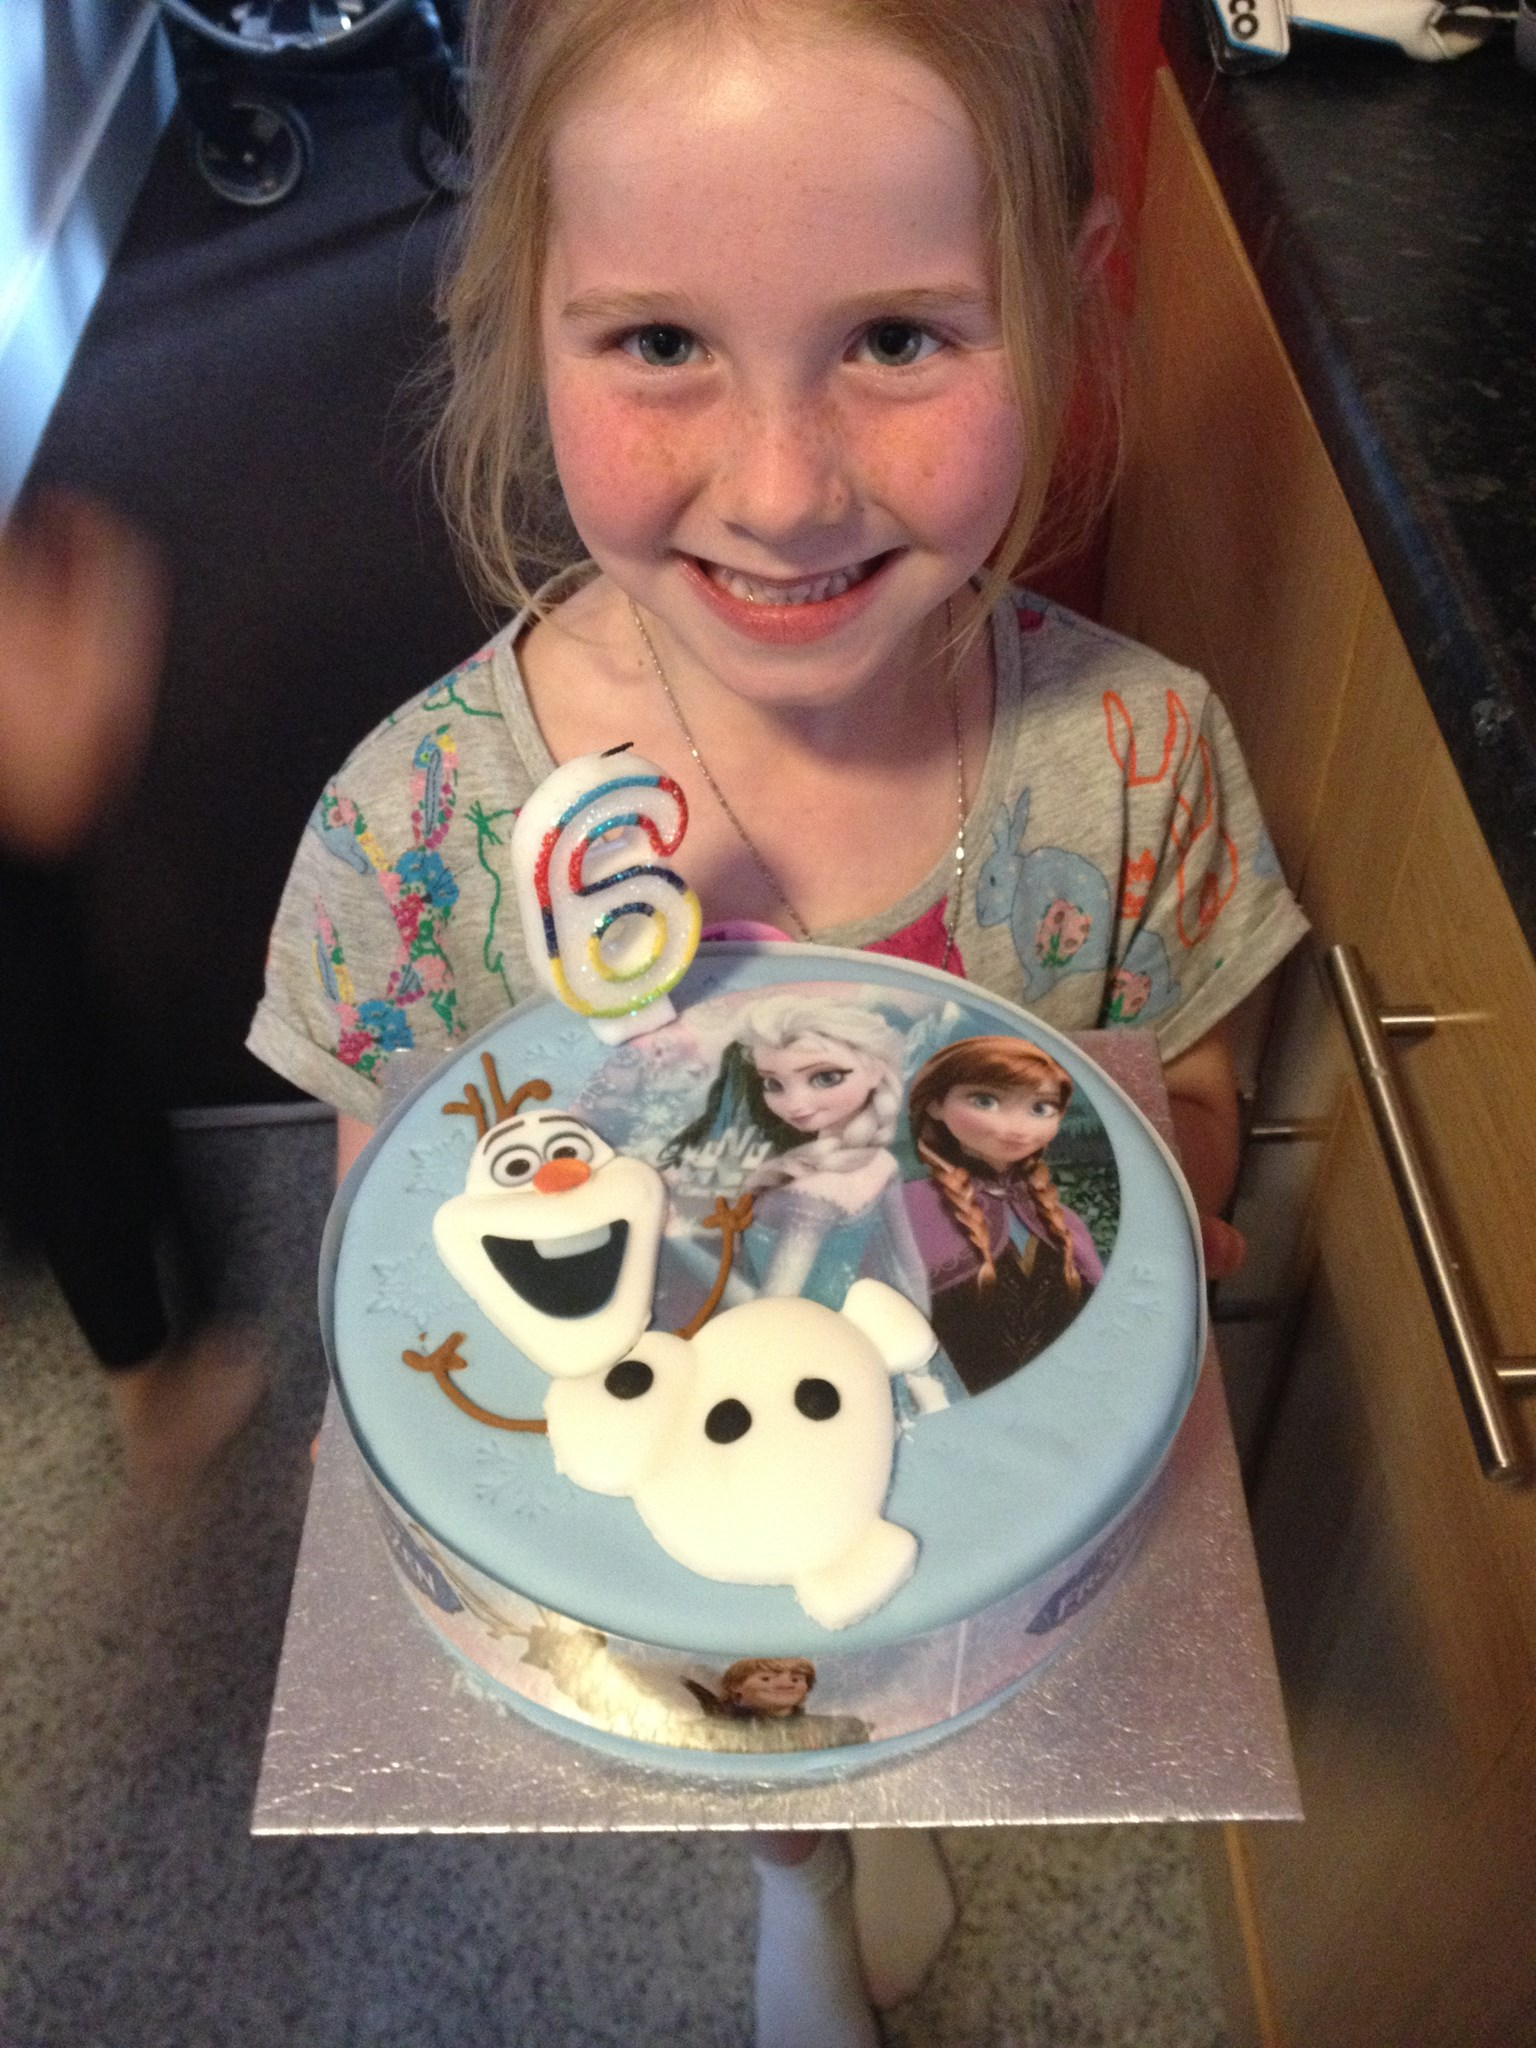 Your cousin Jessica on her 6th birthday this year. Only 3 months between you both :( xx